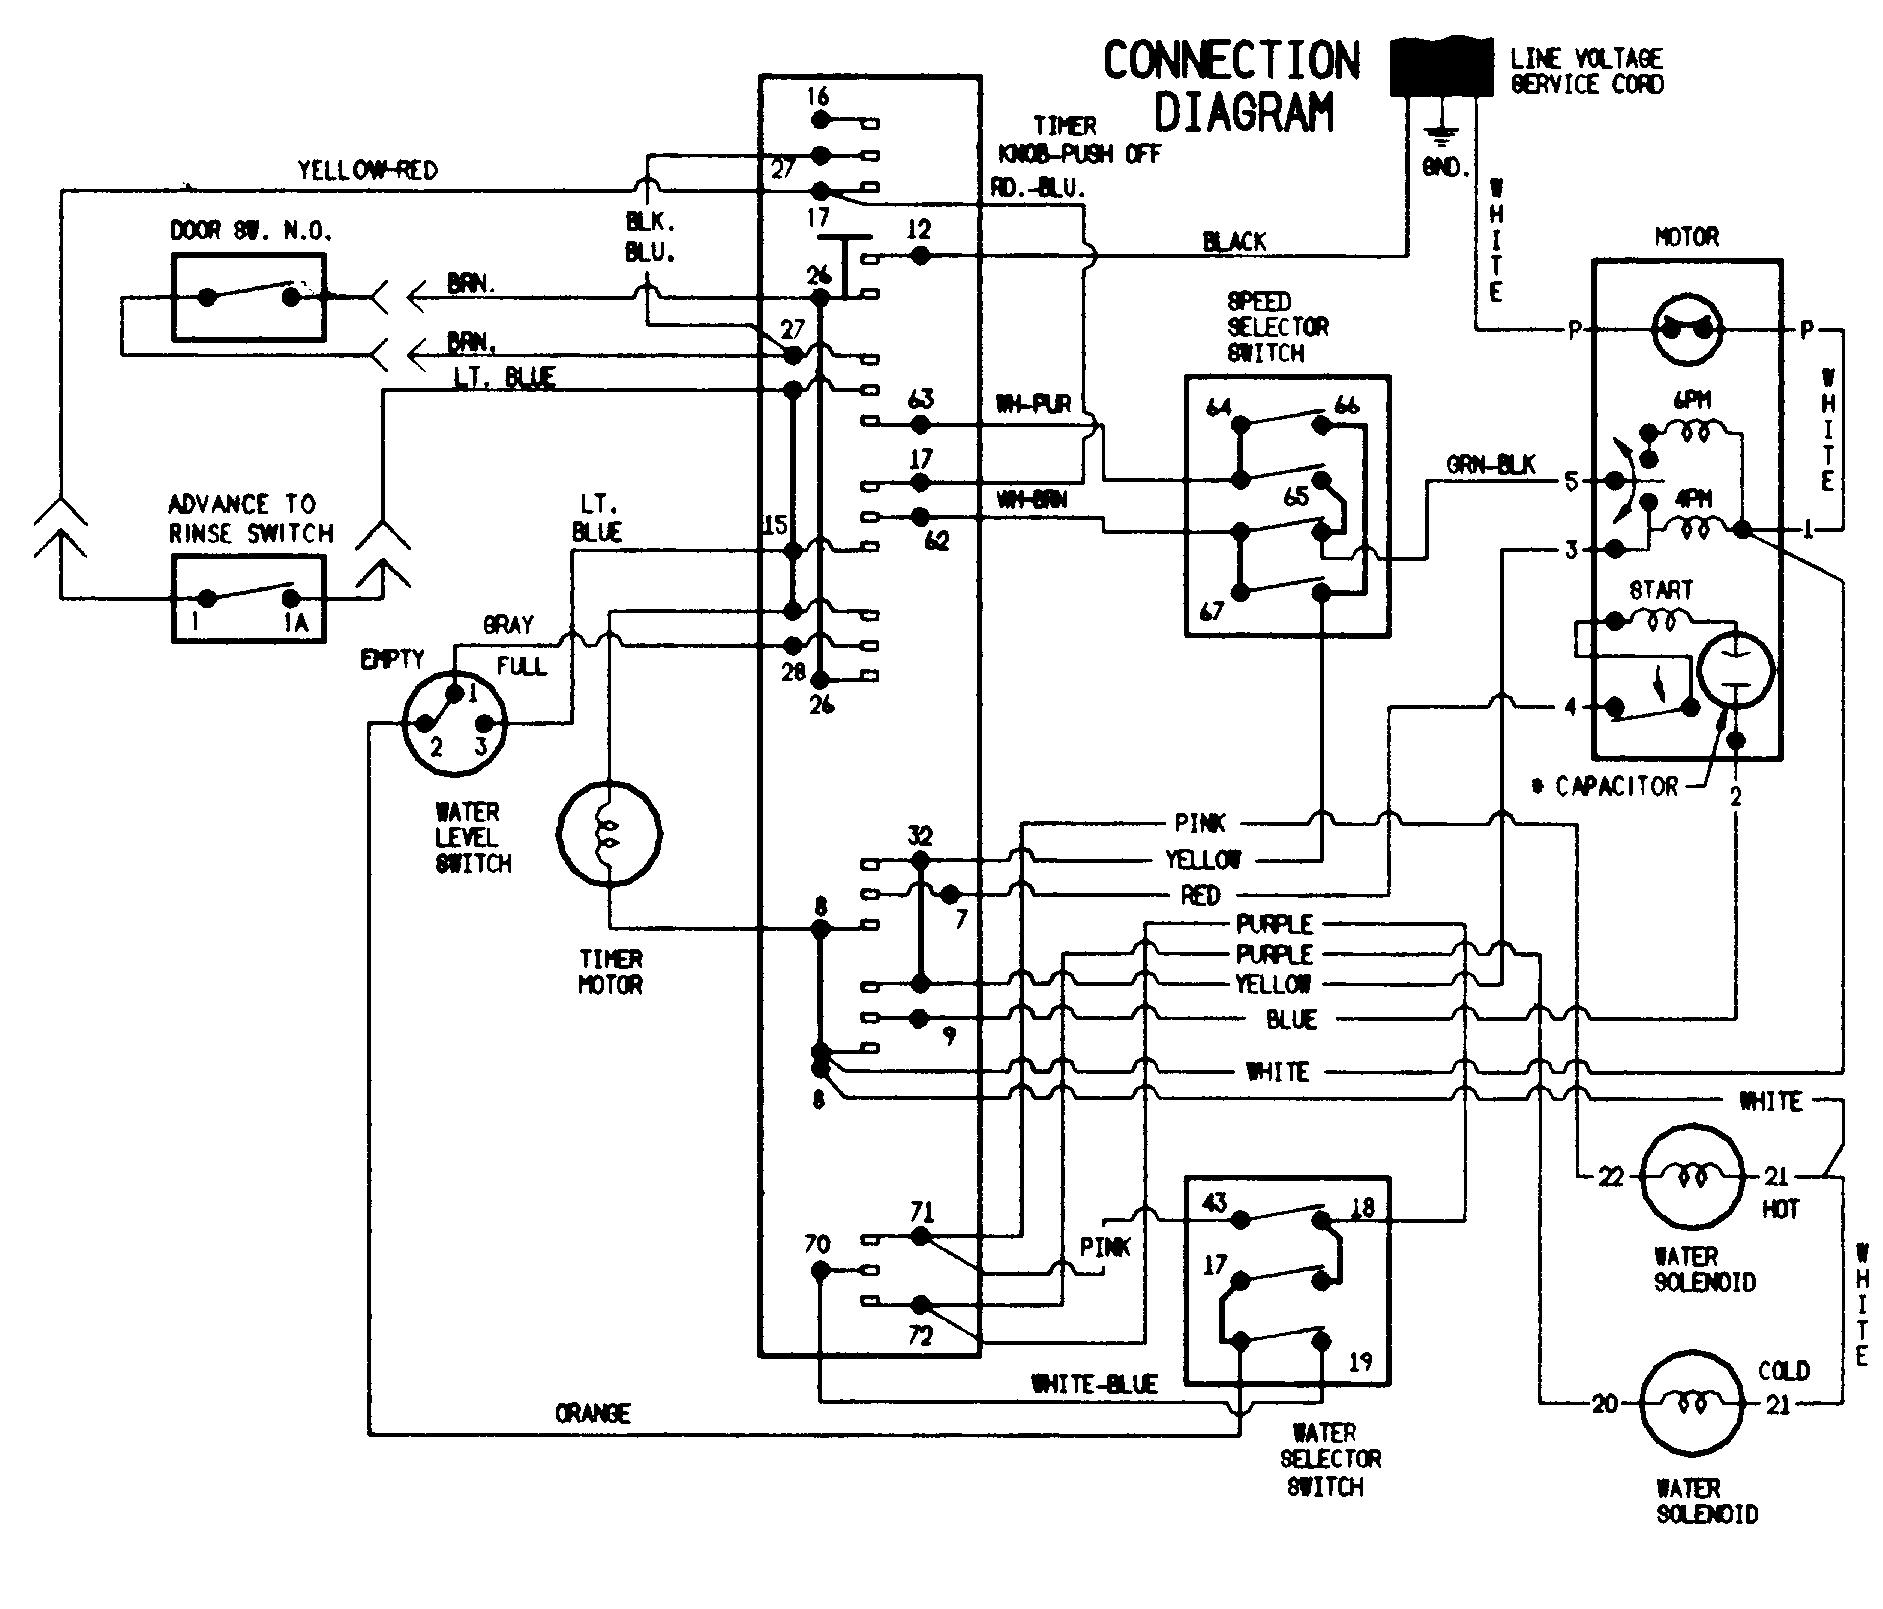 [DIAGRAM_5NL]  4834 Panasonic Washing Machine Wiring Diagram Pdf | Wiring Resources | Whirlpool Semi Automatic Washing Machine Wiring Diagram |  | Wiring Resources